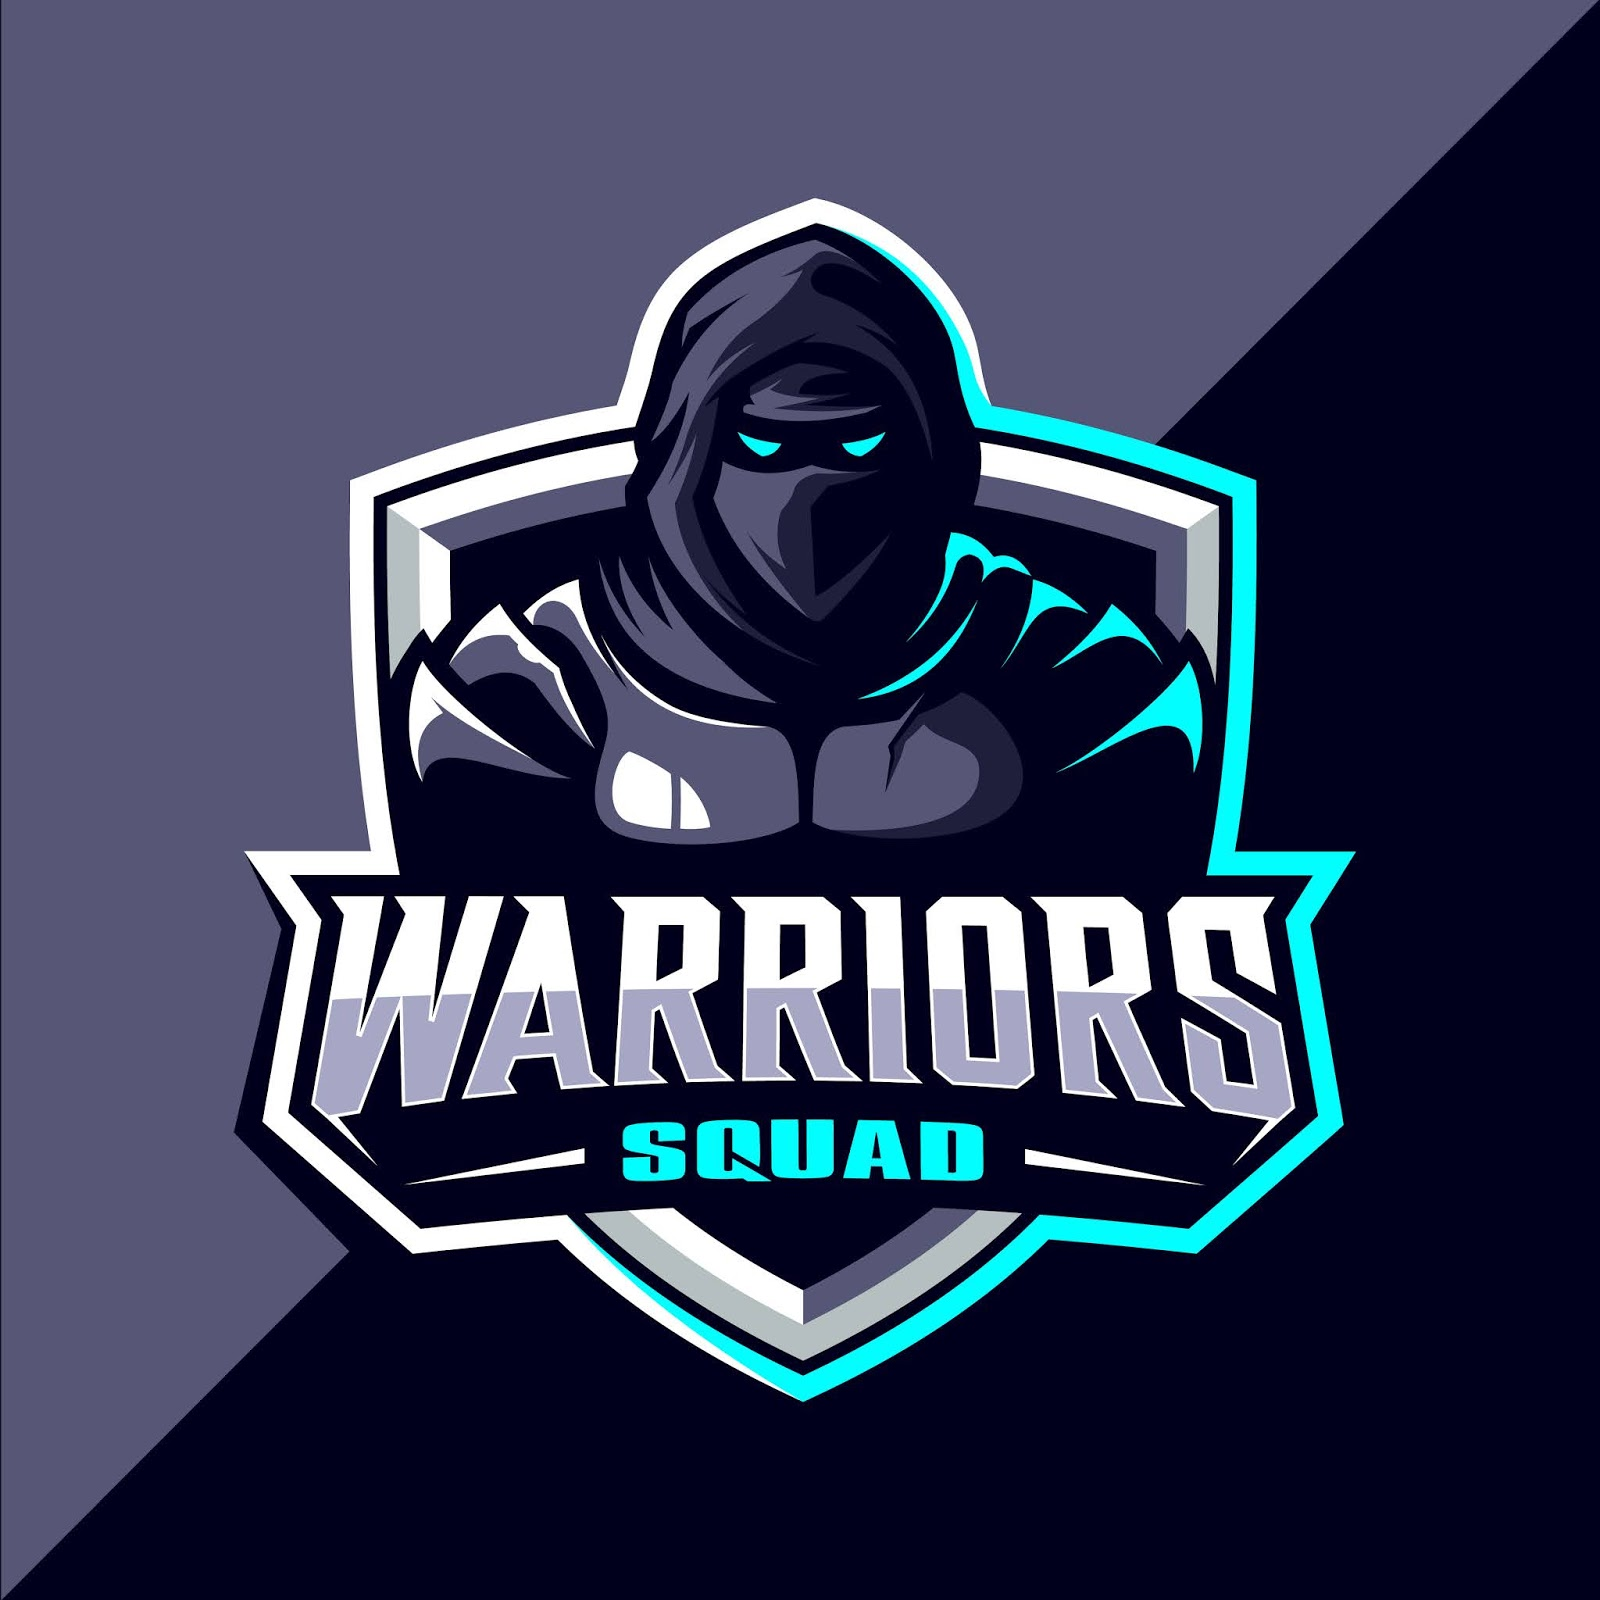 Warriors Esport Logo Design Free Download Vector CDR, AI, EPS and PNG Formats